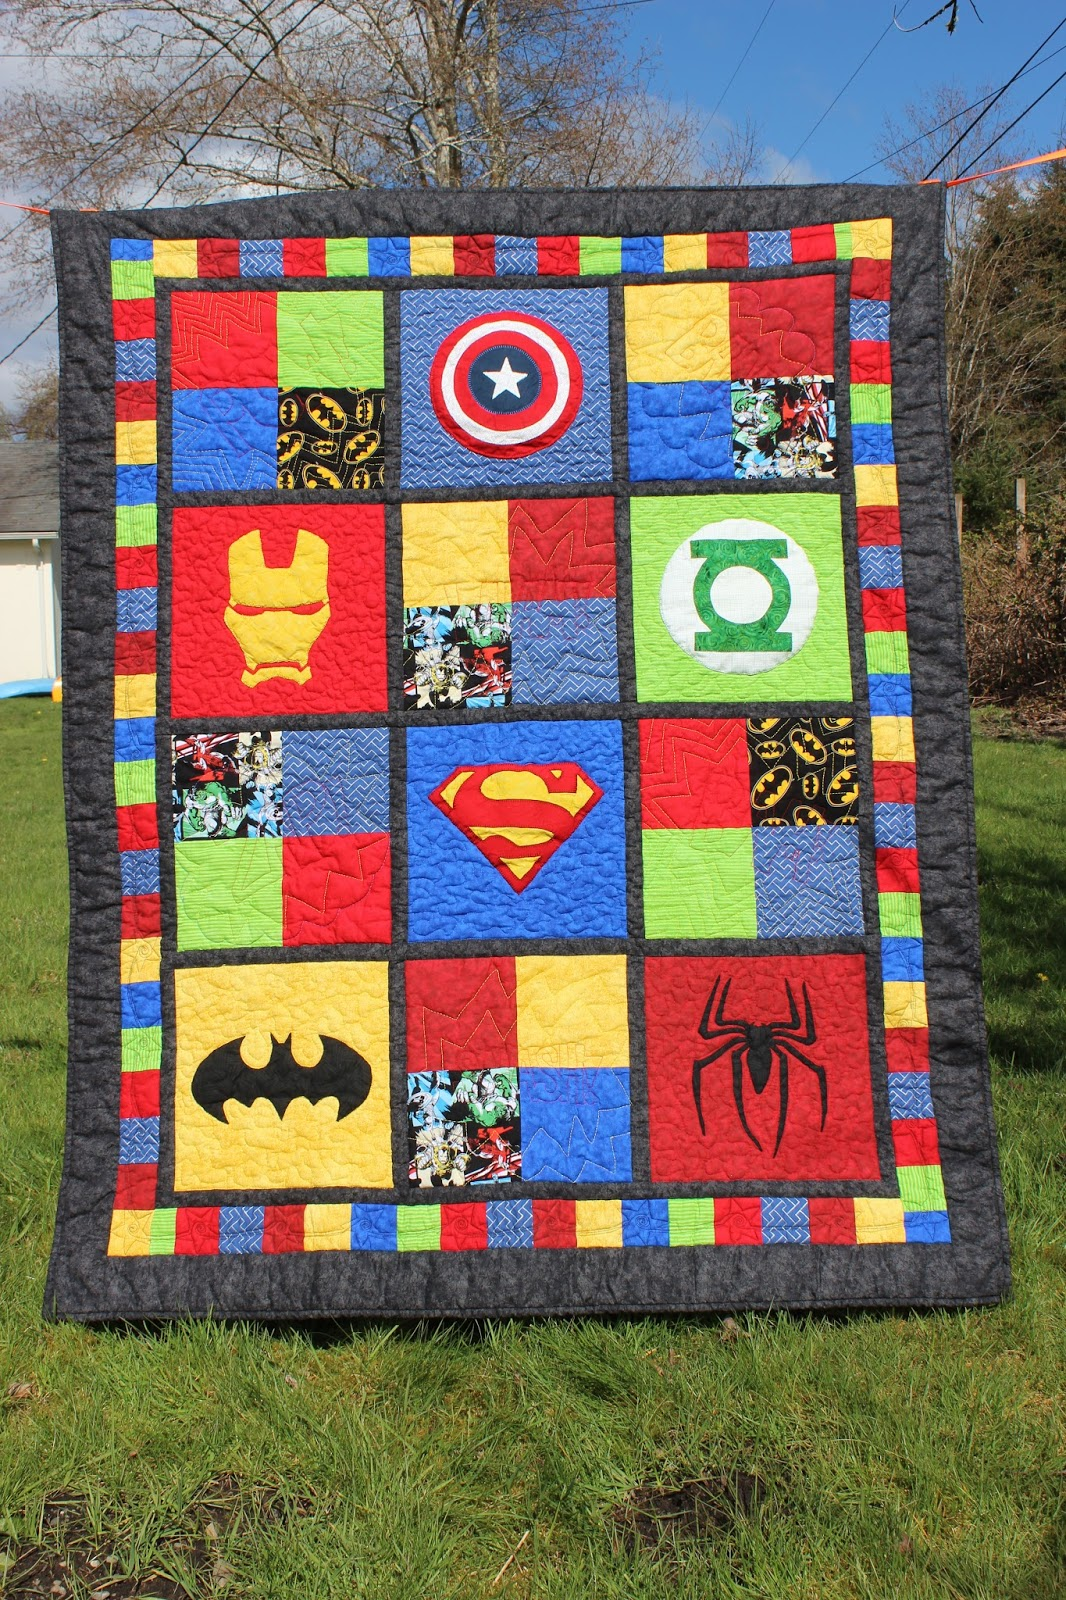 Puddle jumper quilts 39 n 39 things superhero baby quilt for Red door design quilts